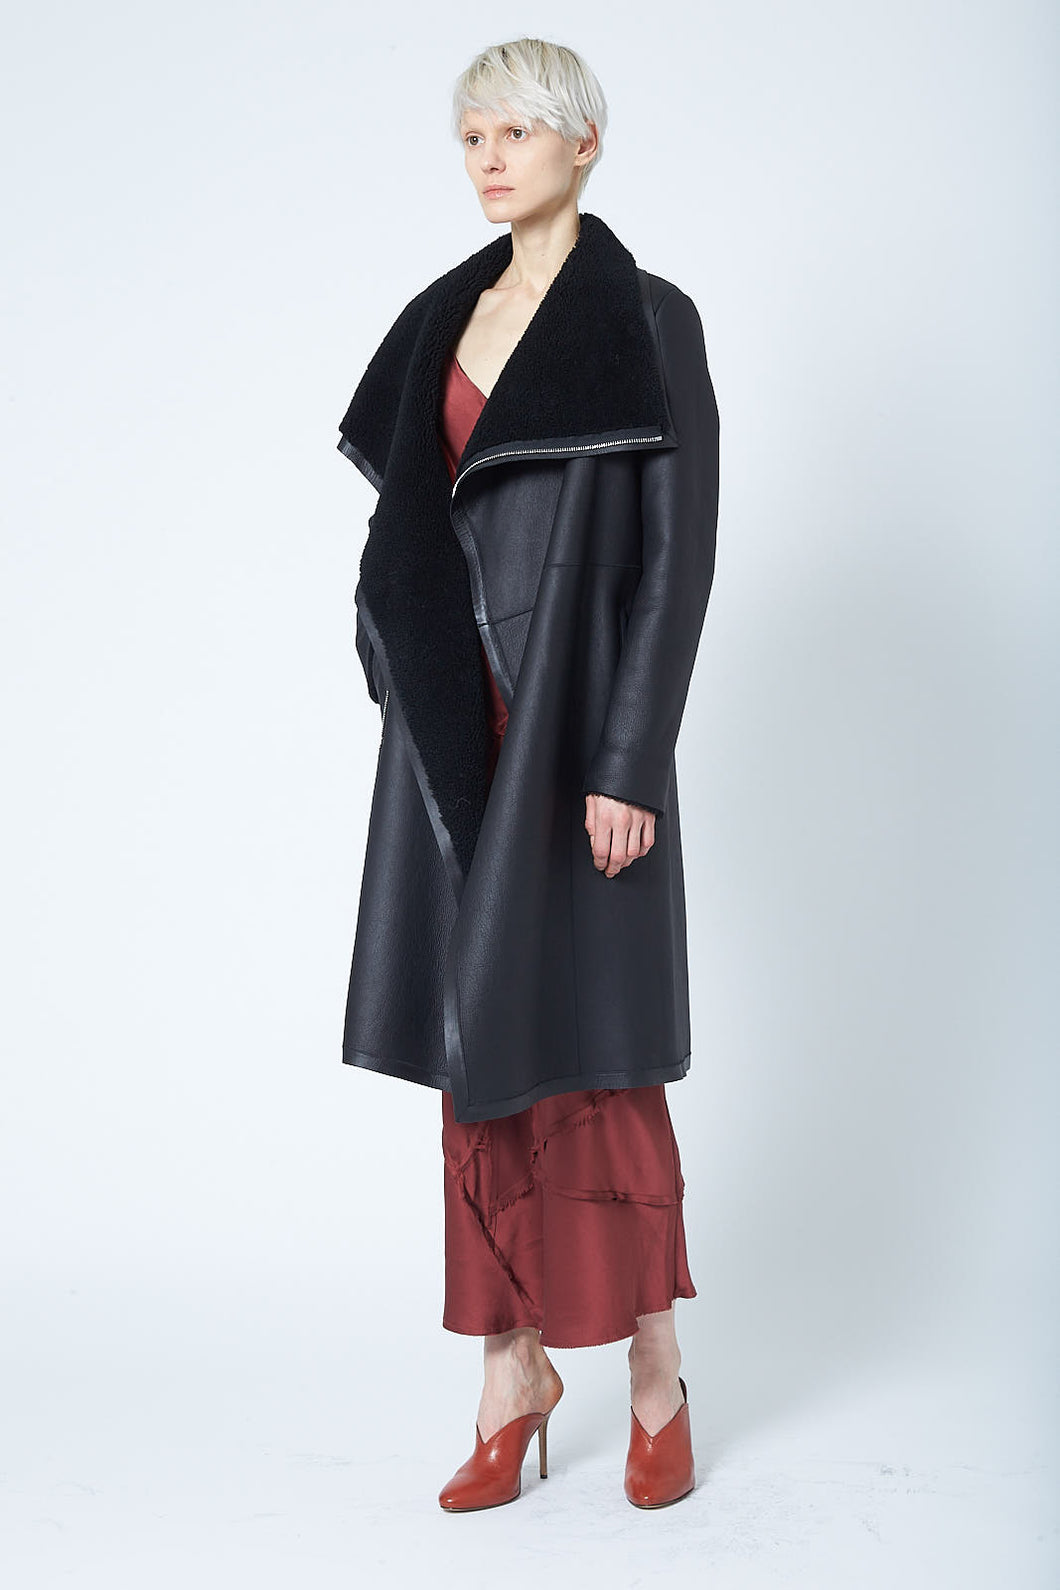 Anne Vest Serenity Coat w/ Zipper